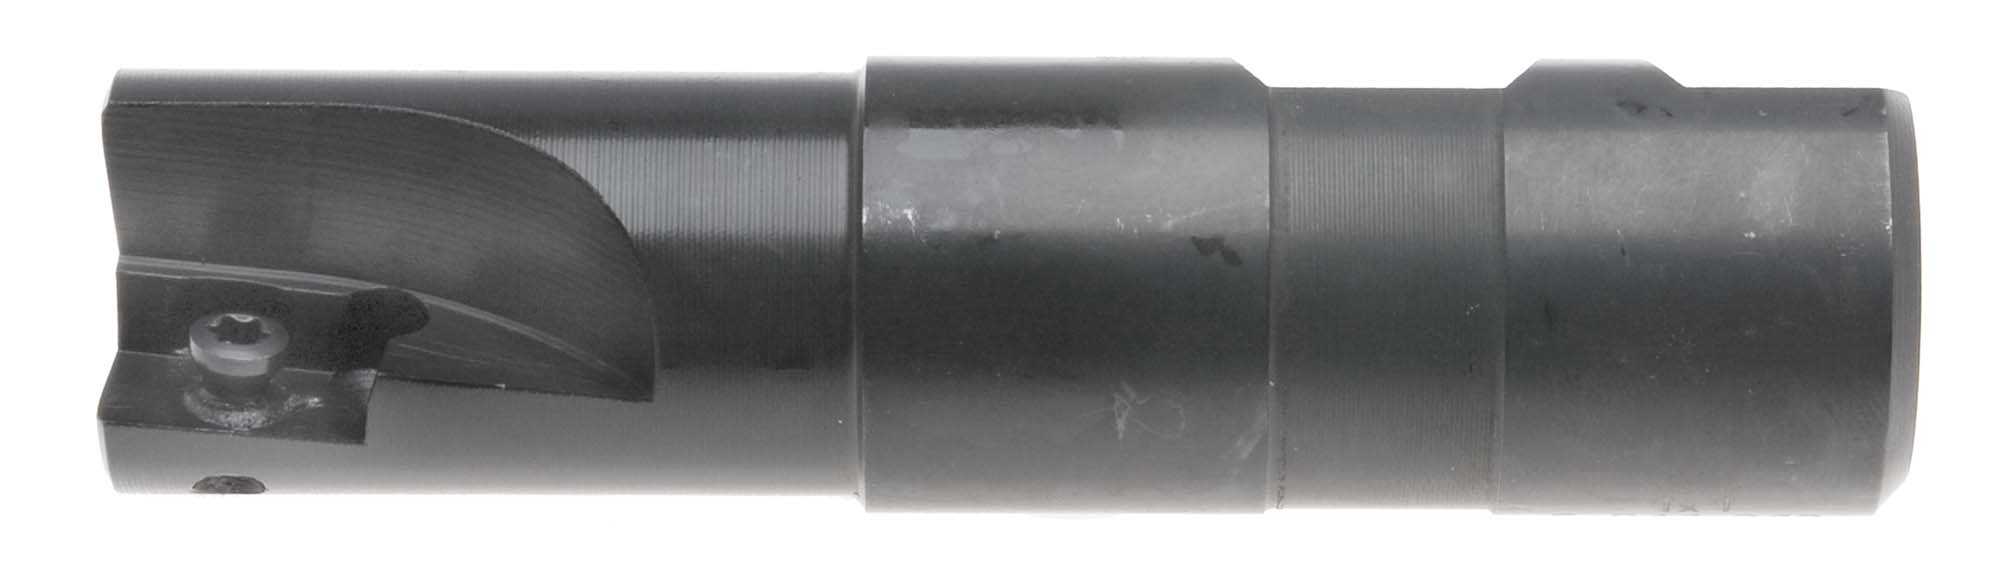 "TMX 6-941-105  1"" APKT Indexable End Mill"